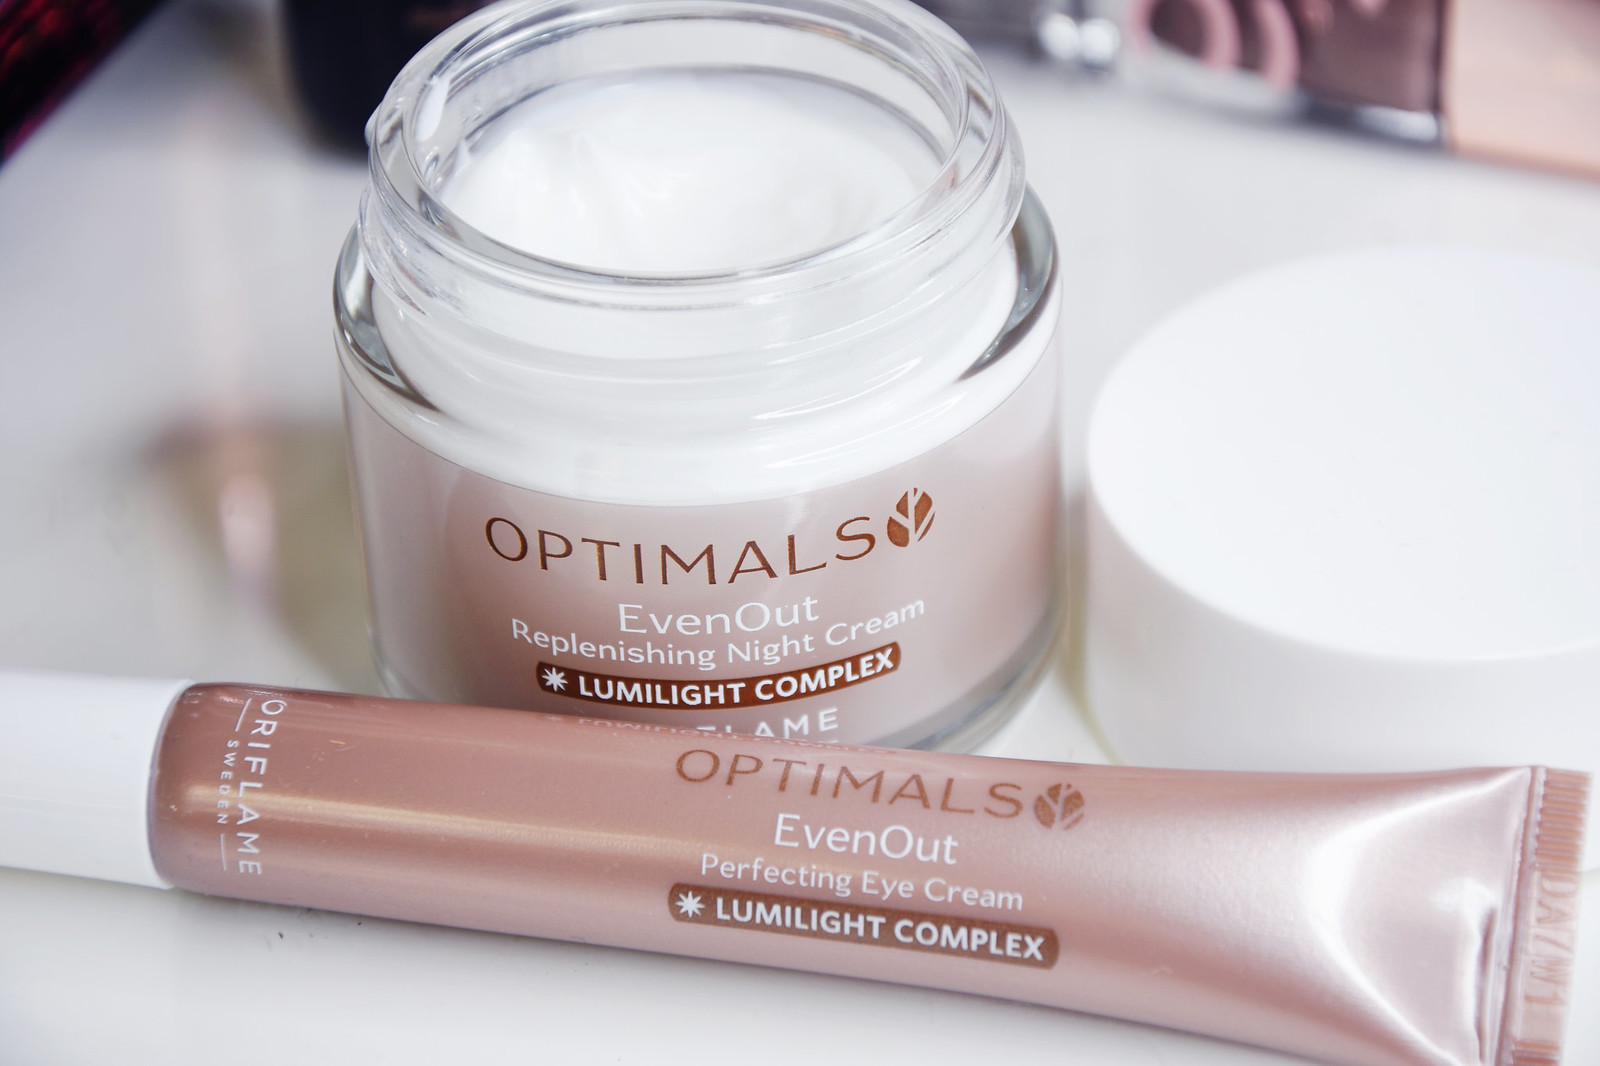 Orflame Even out Perfecting ey cream and night cream review